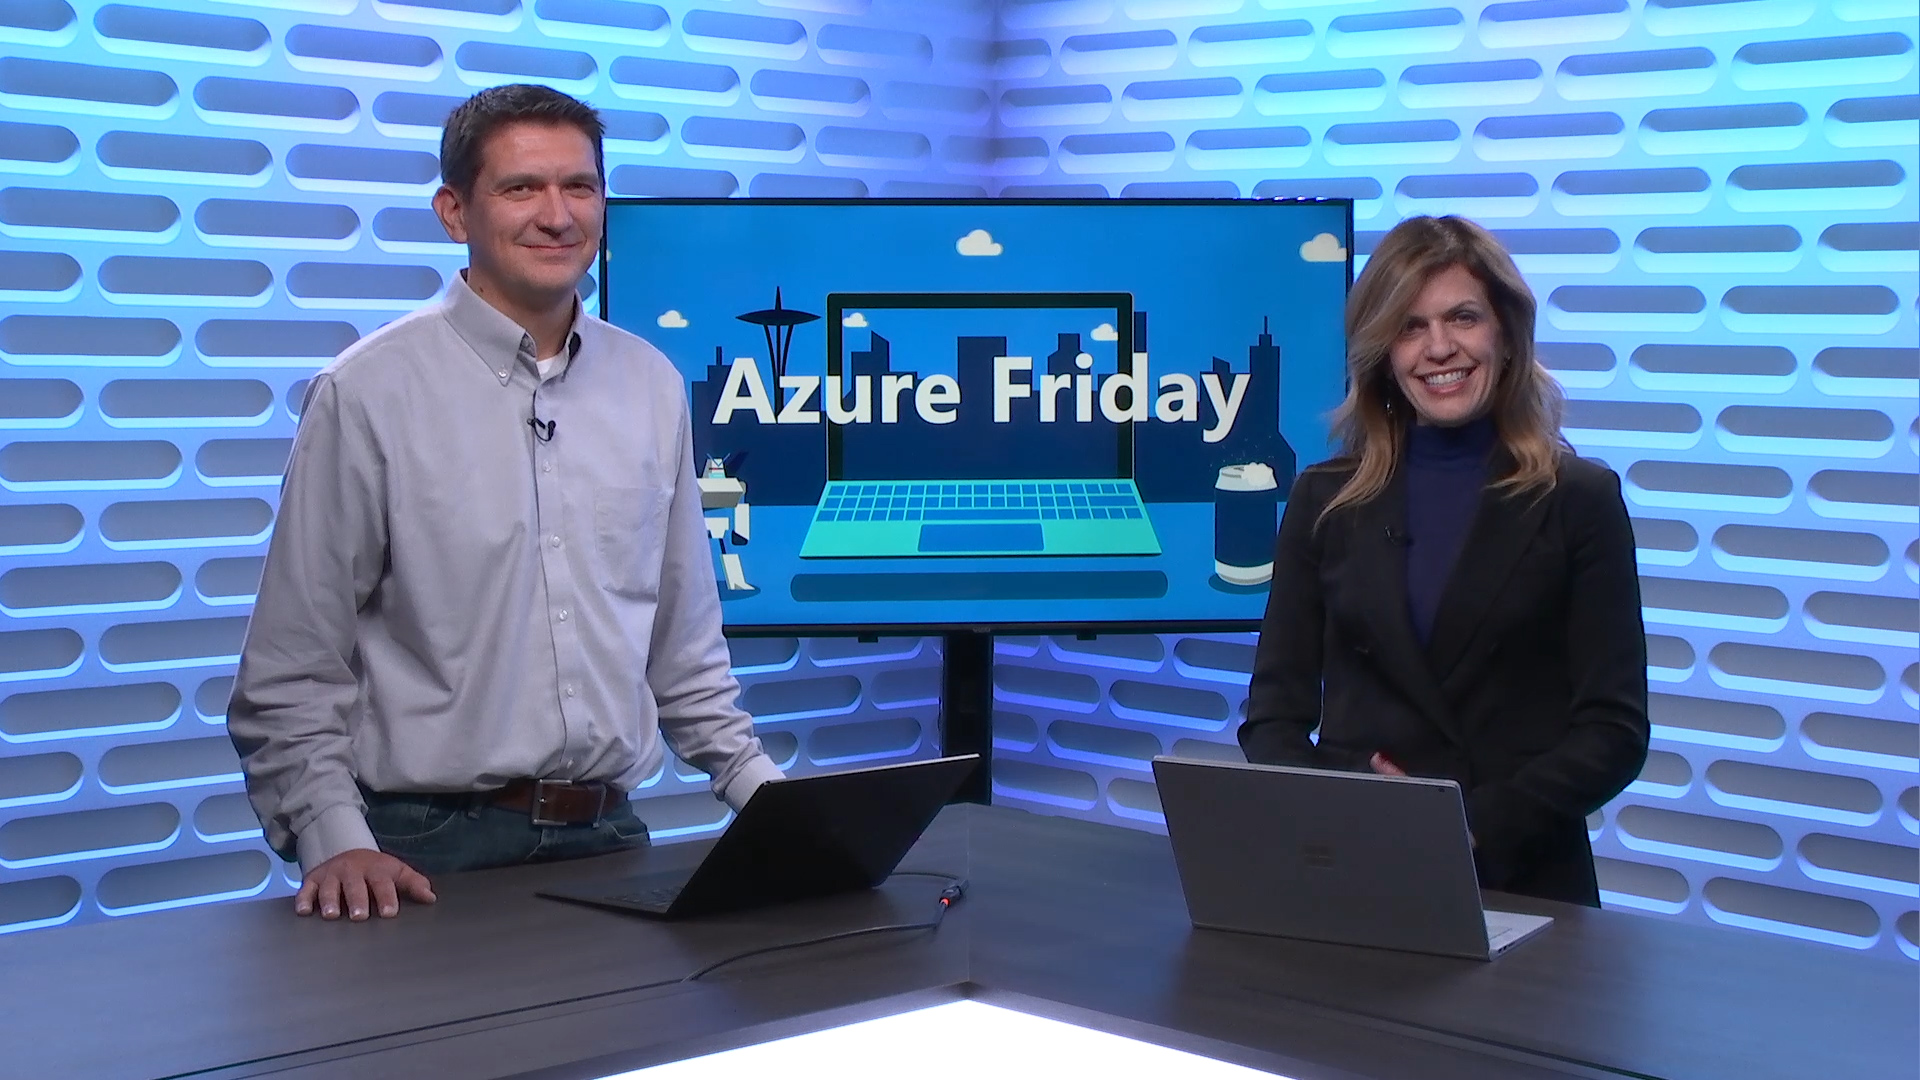 Microsoft Cloud Adoption Framework for Azure, Part 1